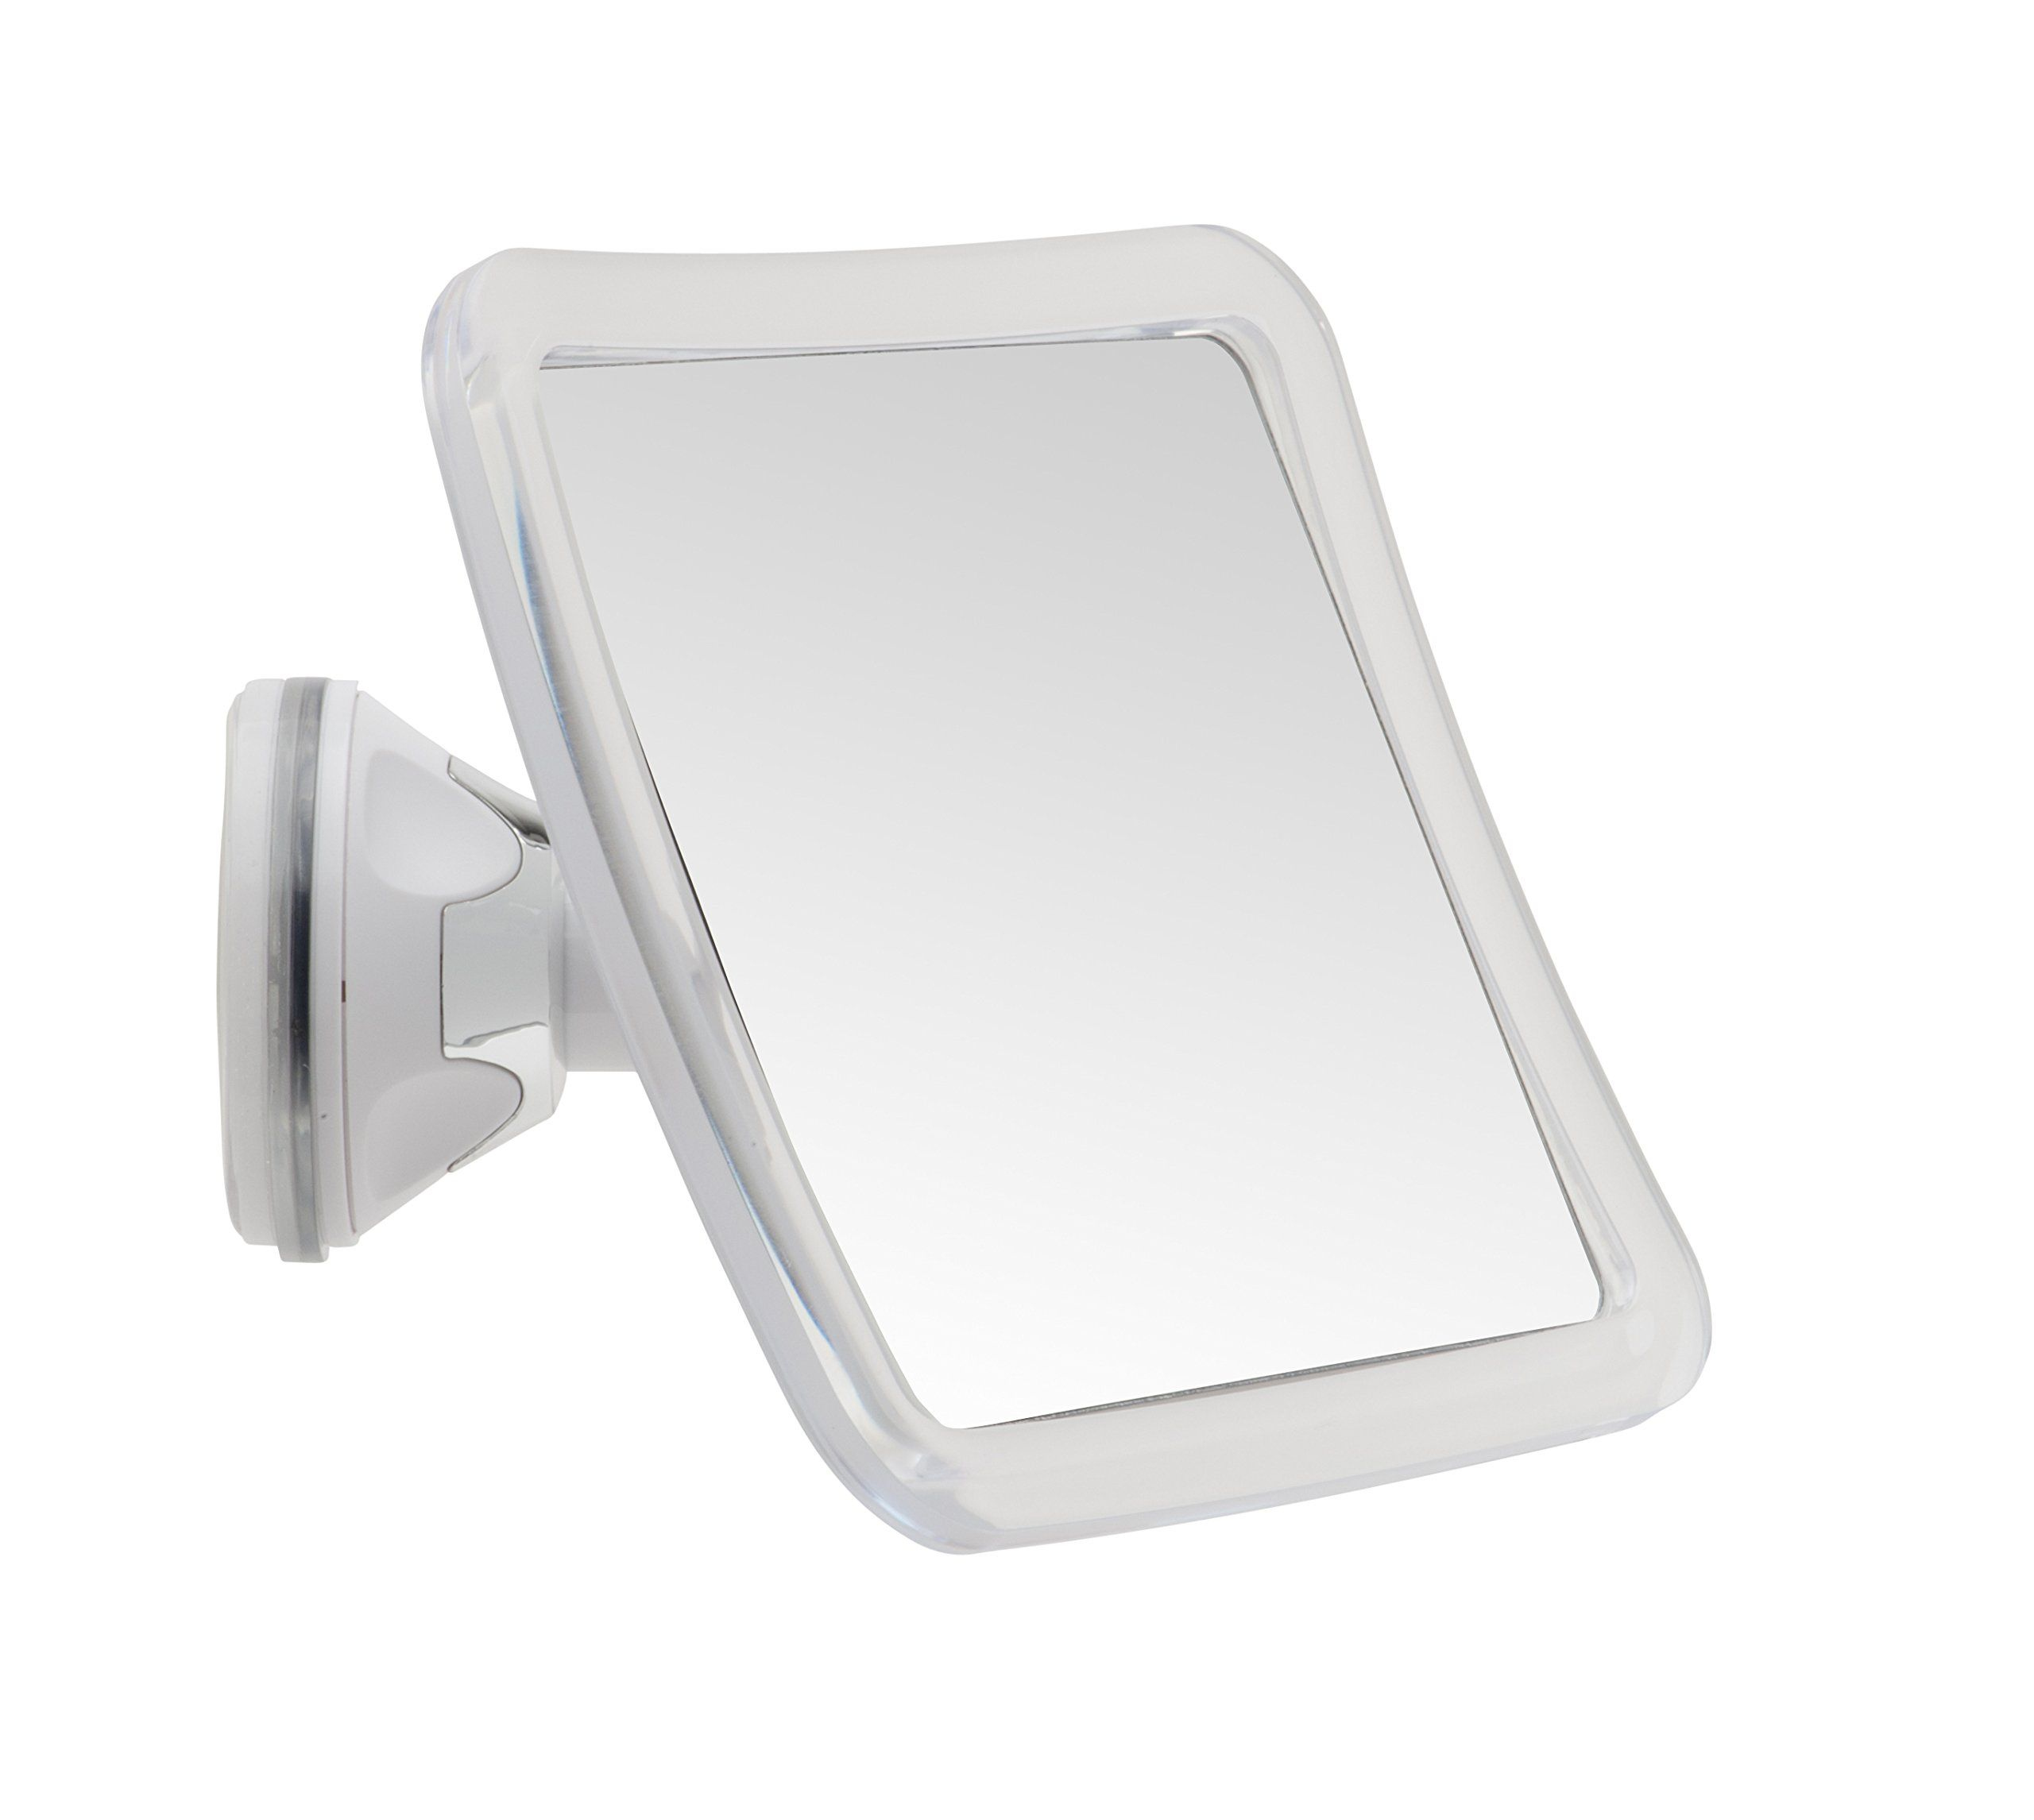 Shower Mirror Home Wall Hanging With Suction For Shaving Fogless Shatterproof